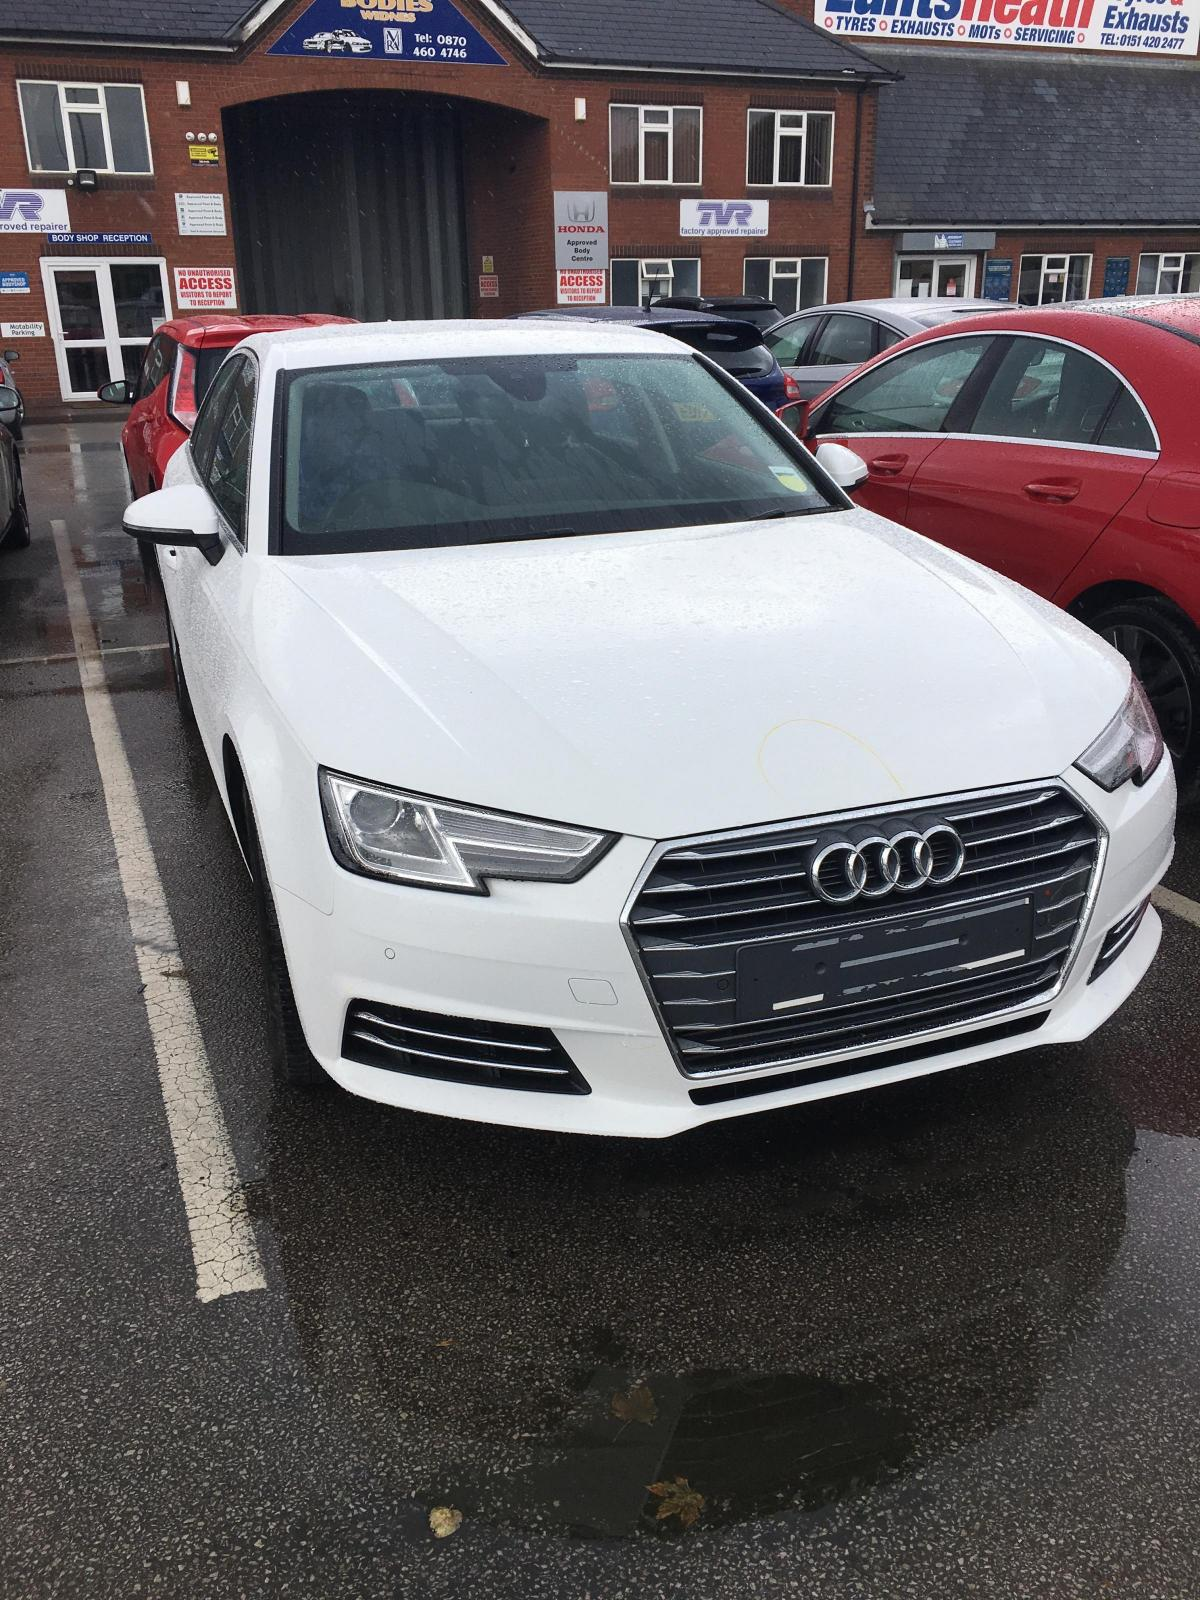 Audi Left At Manchester Airport Meet And Greet Parking Written Off And Found With Weapons In Boot Lancashire Telegraph